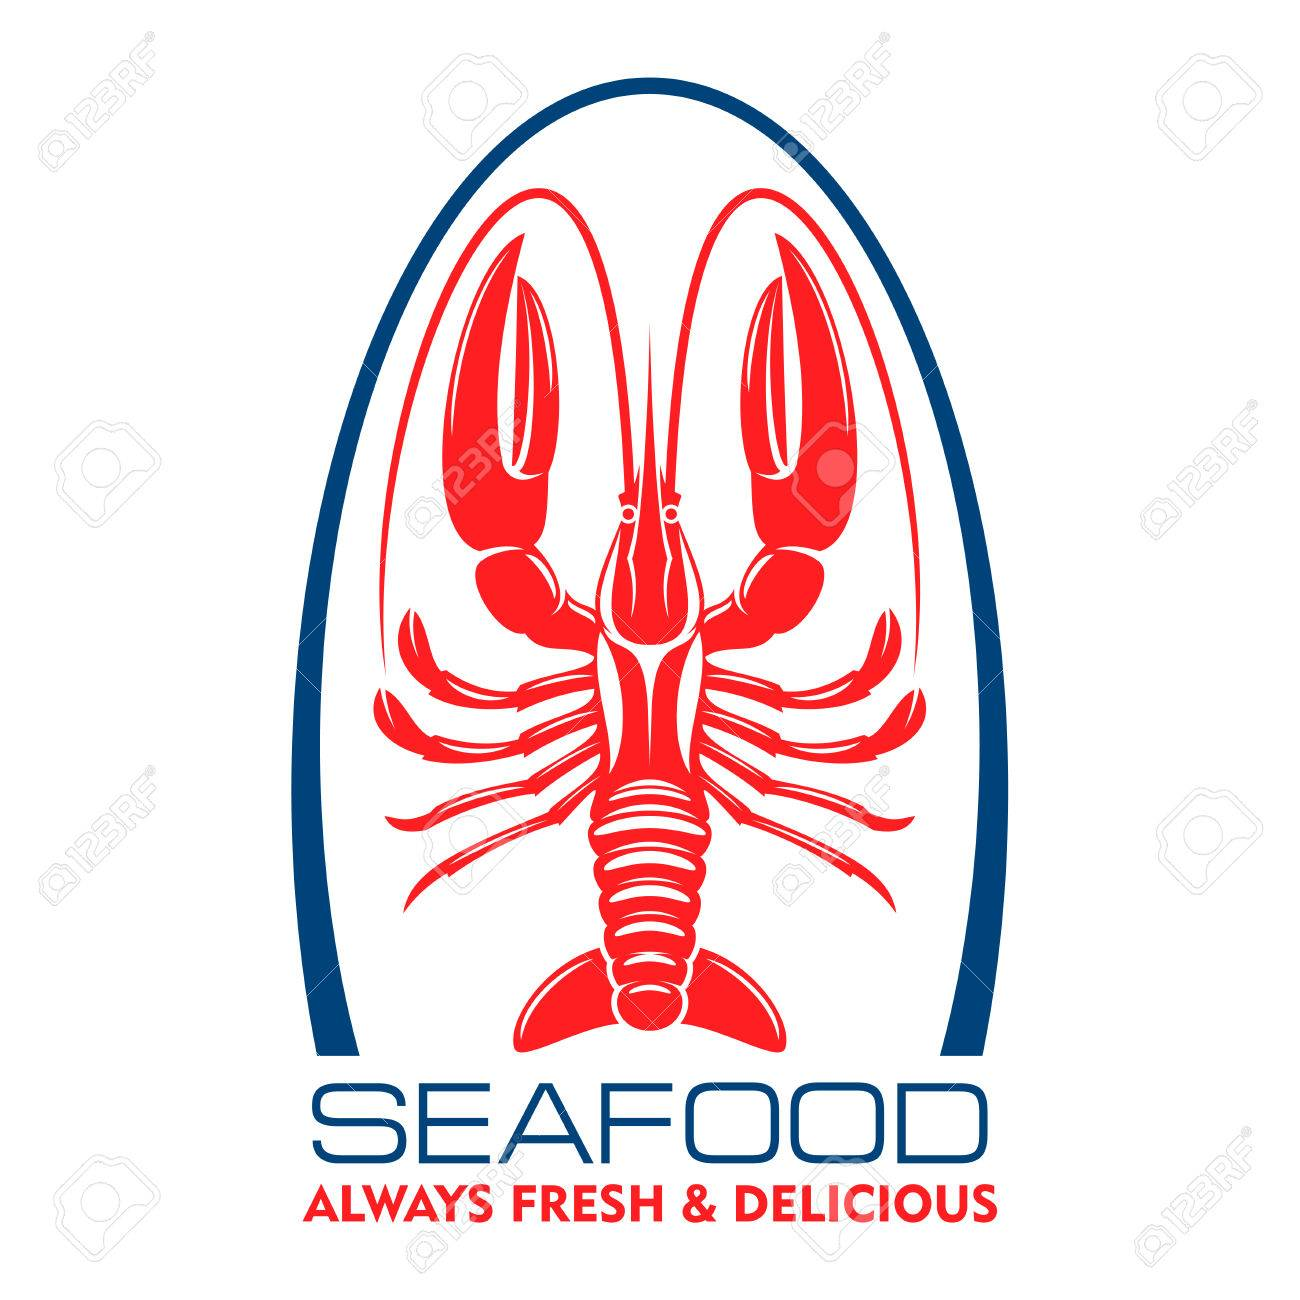 Delicious Wild Caught Marine Lobster Or Crayfish Red Symbol For